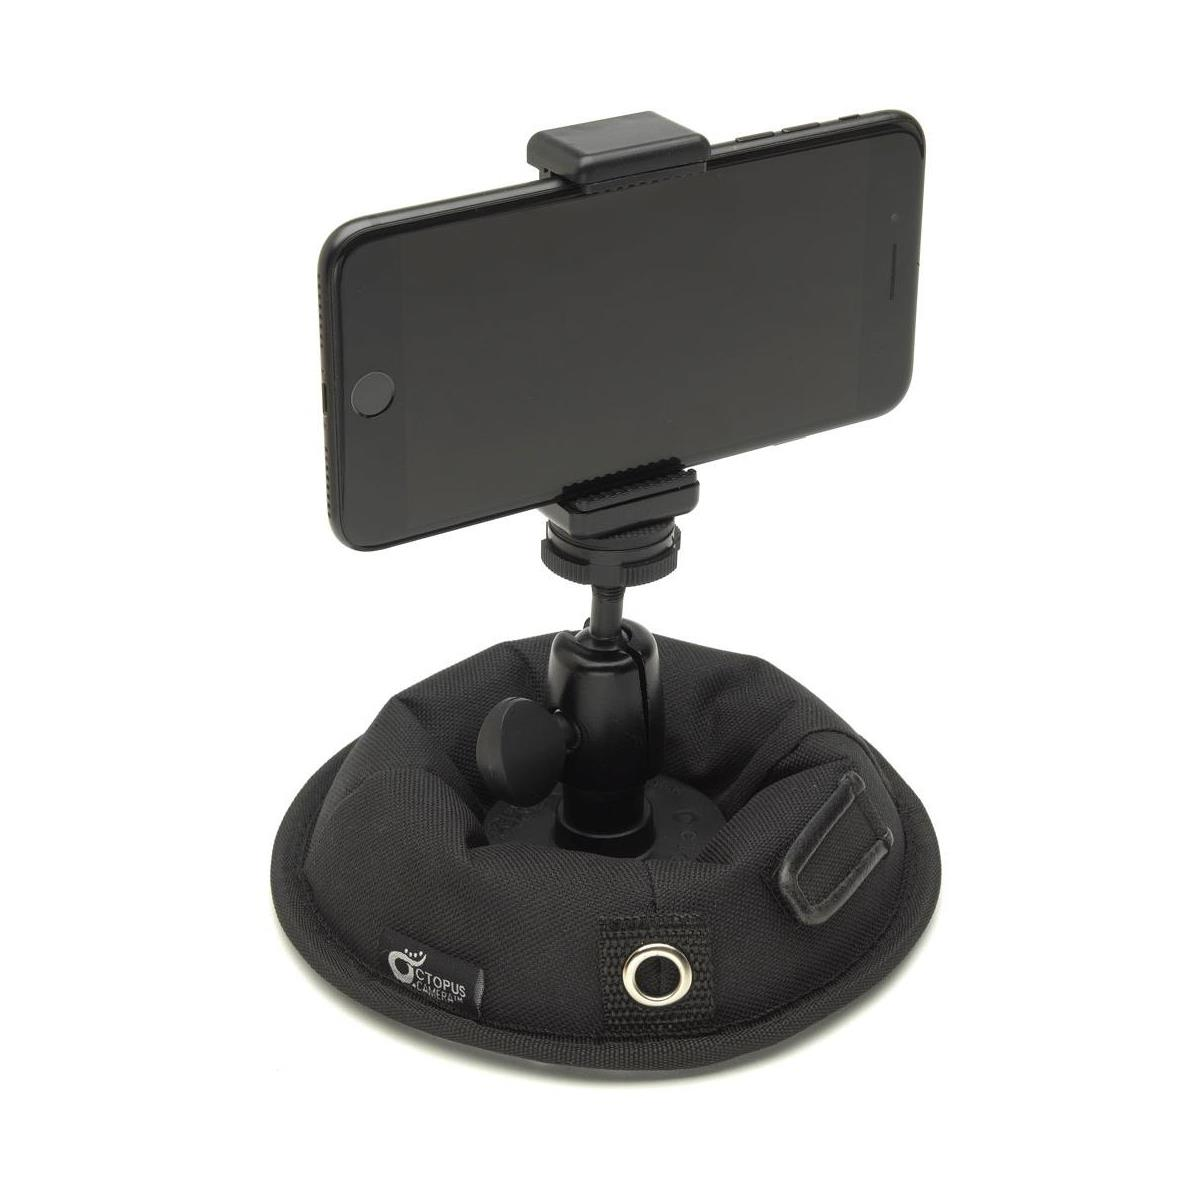 smartphone photography accessories 2 image